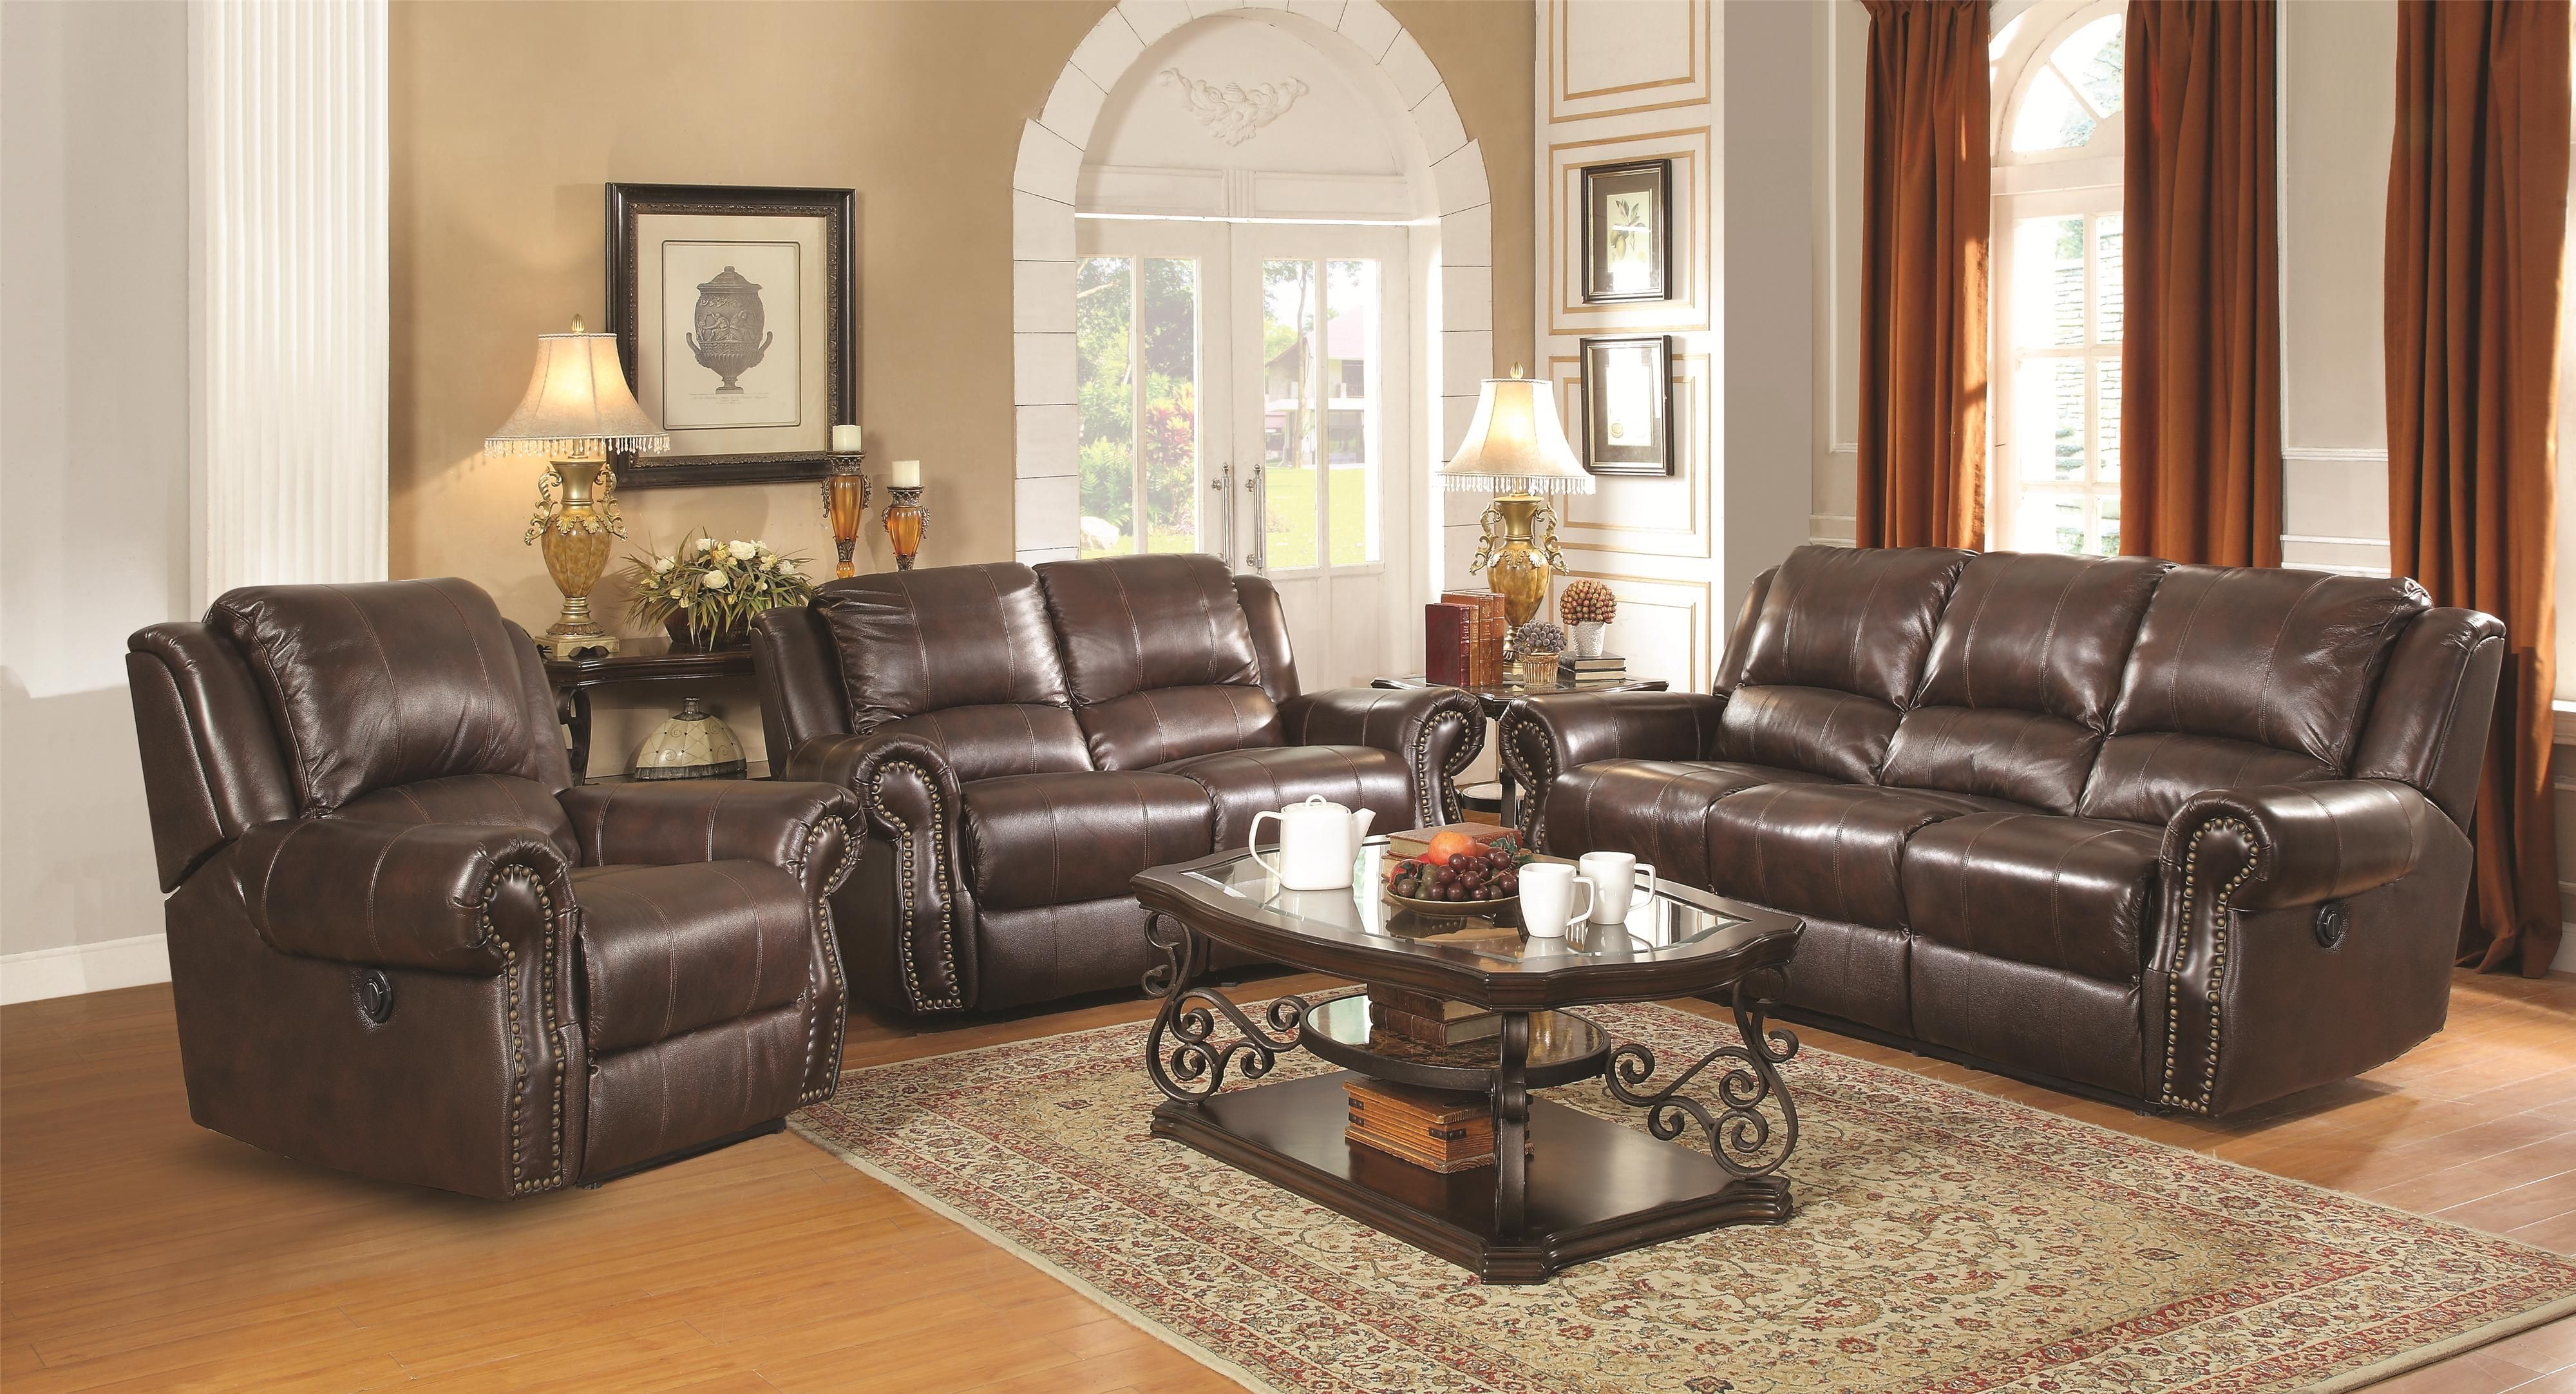 Sir Rawlinson Reclining Living Room Group By Coaster Burgundy Leather Sofa